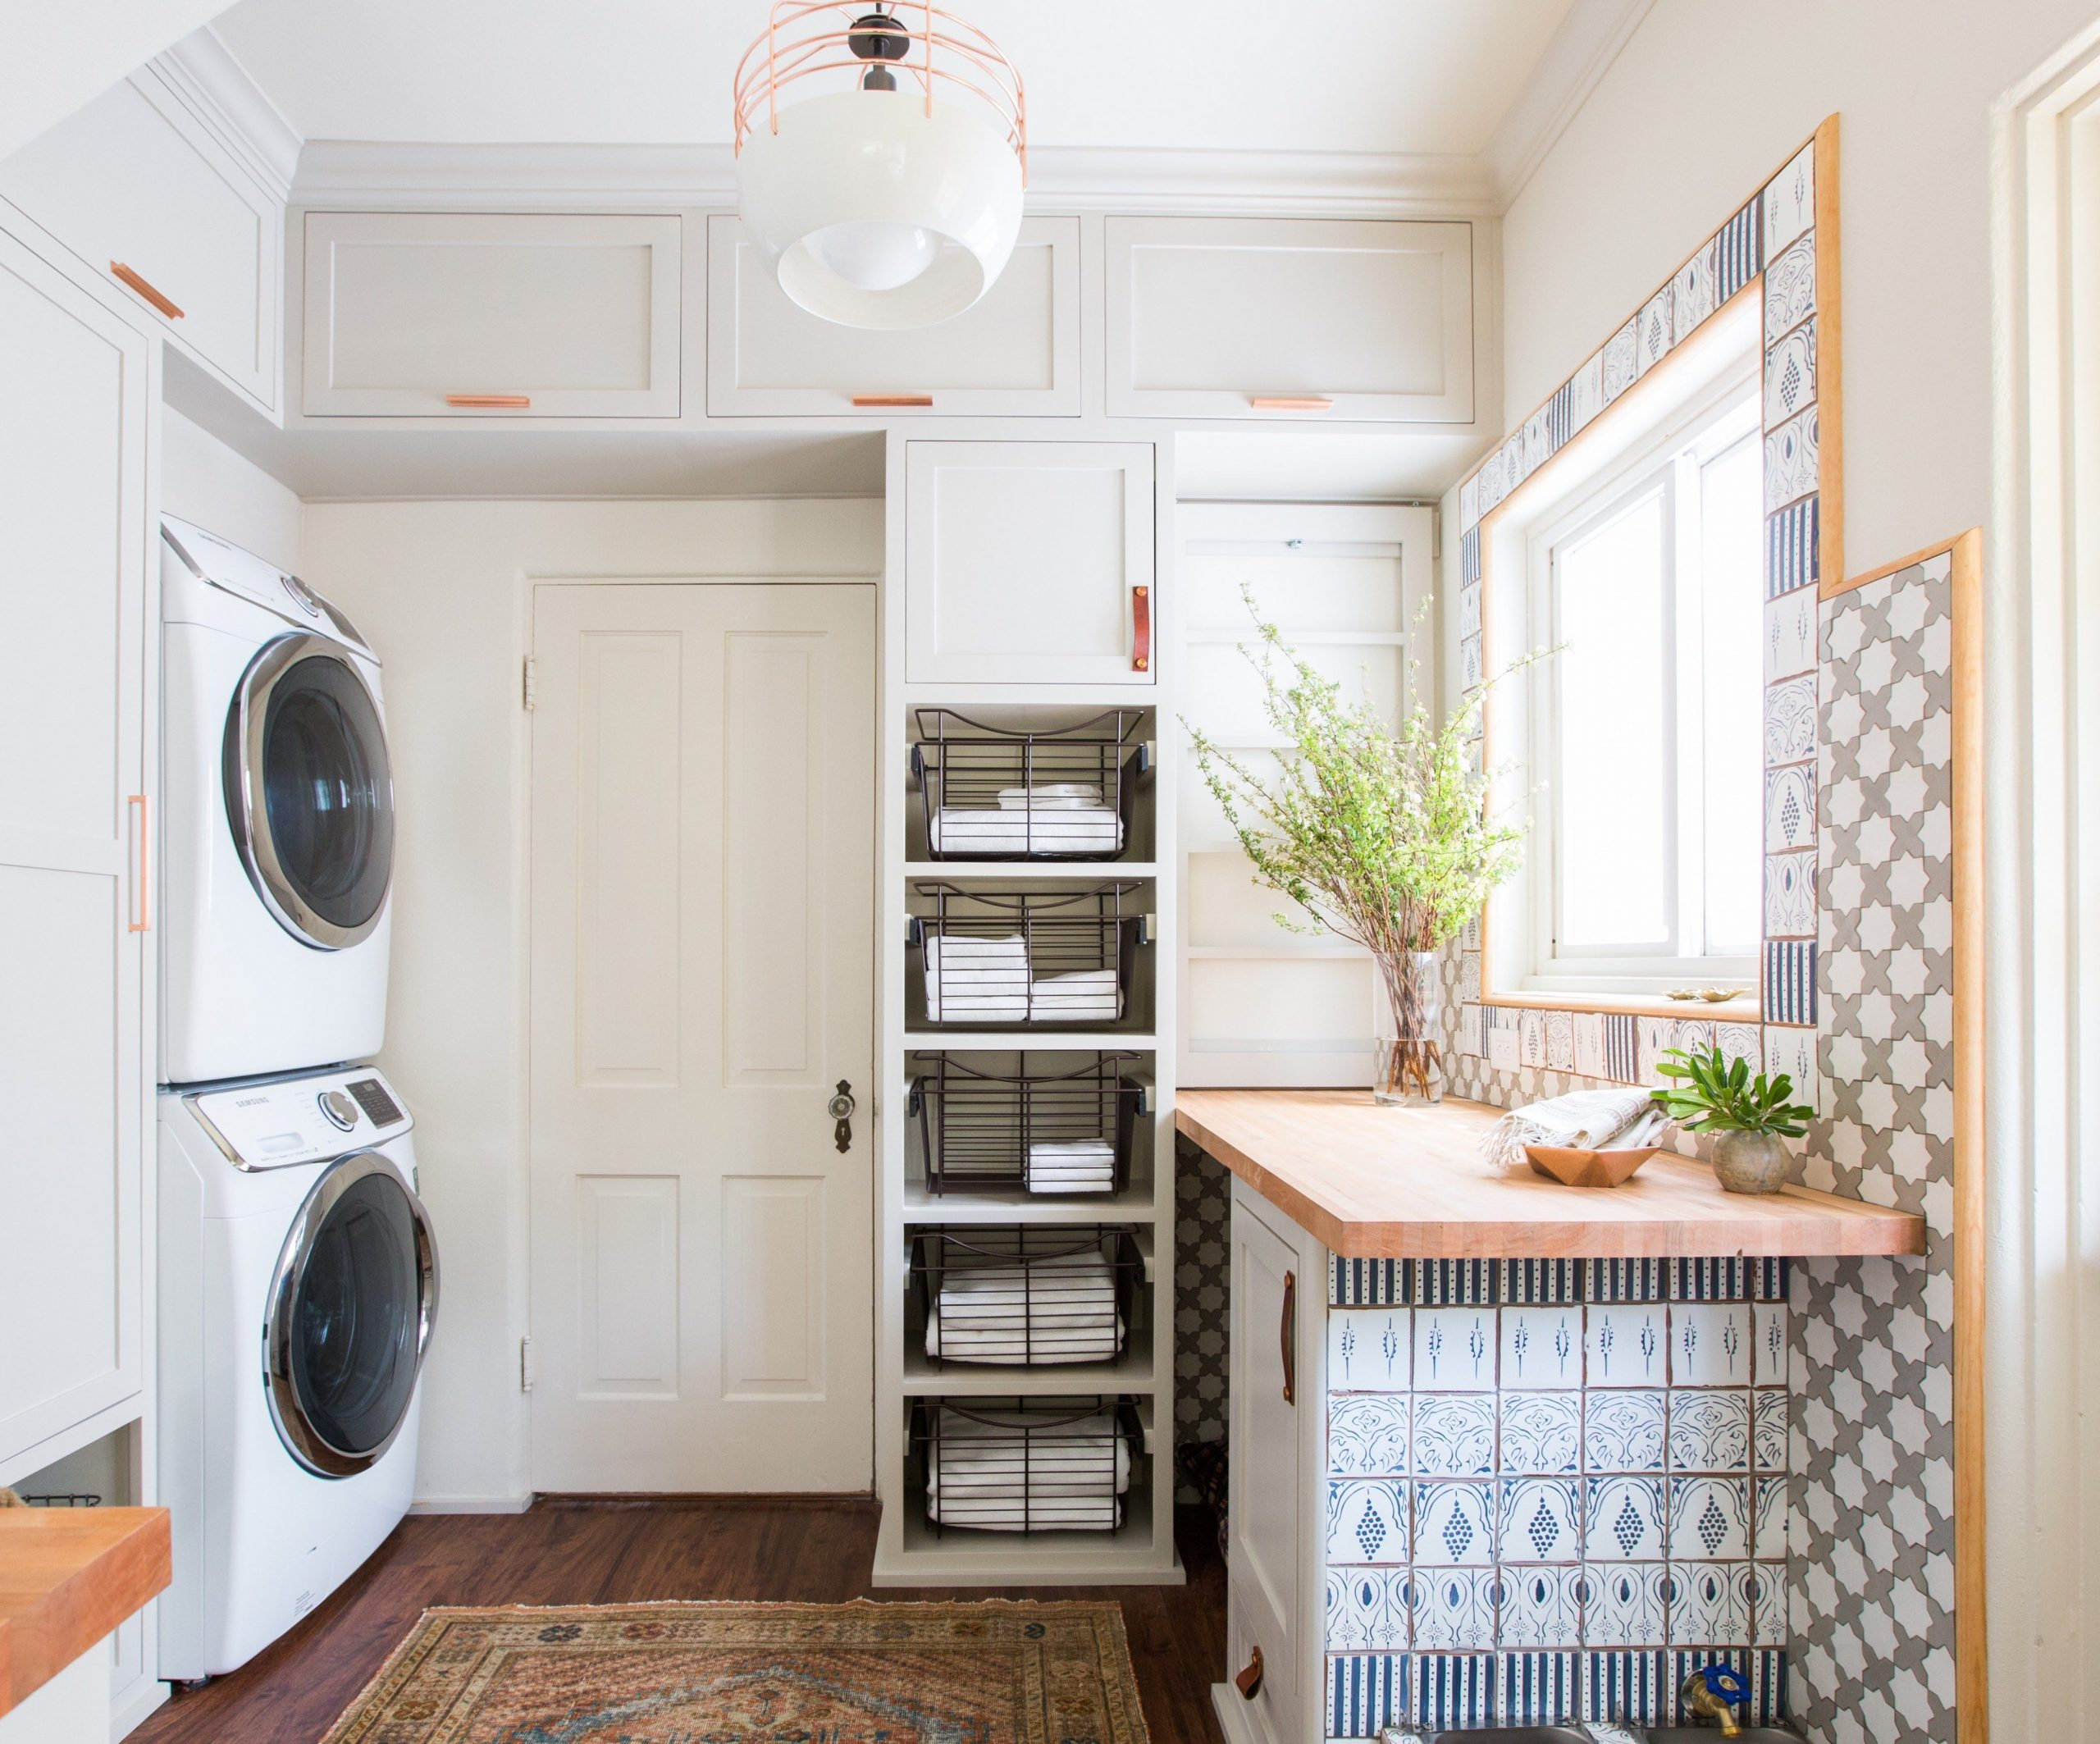 12 Best Laundry Rooms - Lovely & Functional Laundry Room Ideas - Laundry Room Office Ideas